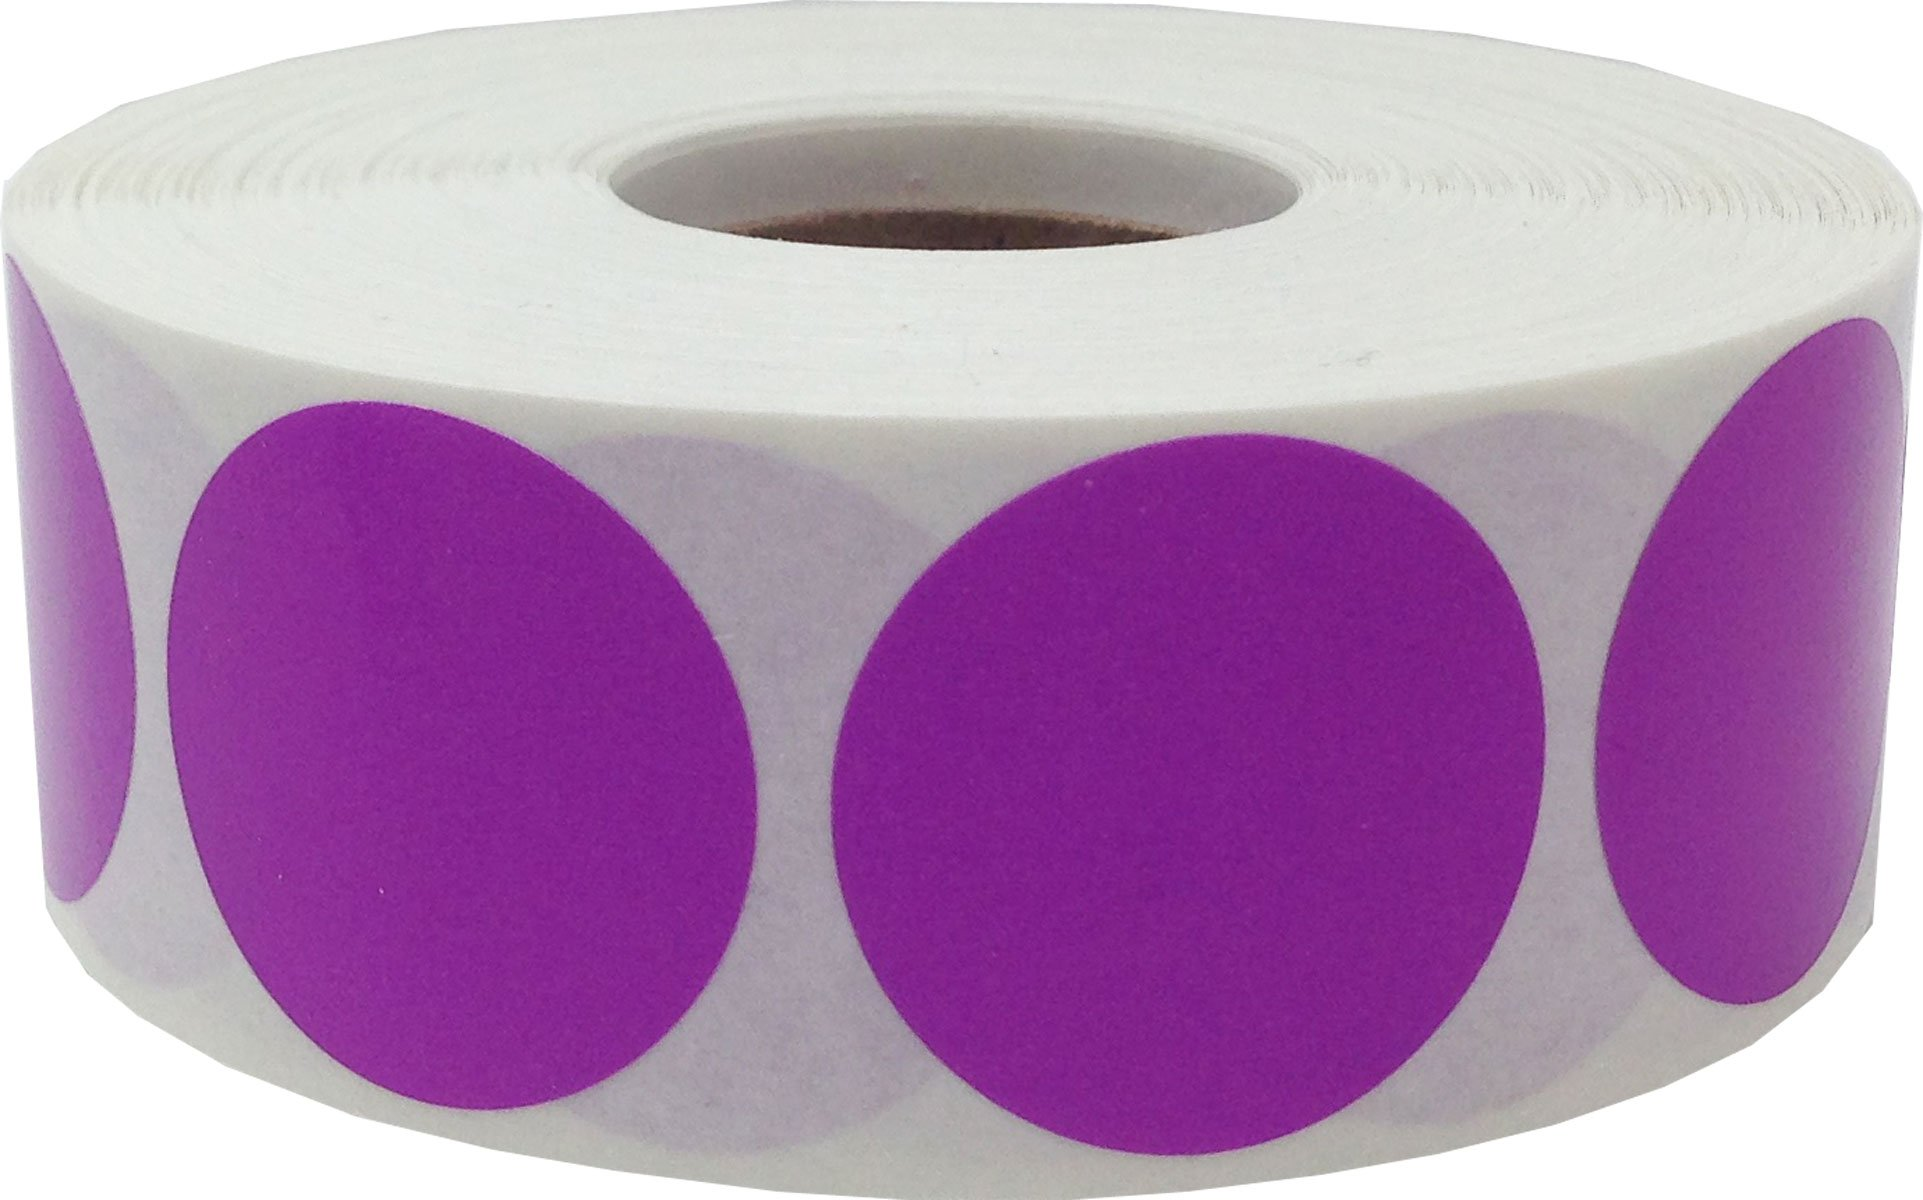 Color Coding Labels Lilac Round Circle Dots For Organizing Inventory 1 Inch 500 Total Adhesive Stickers